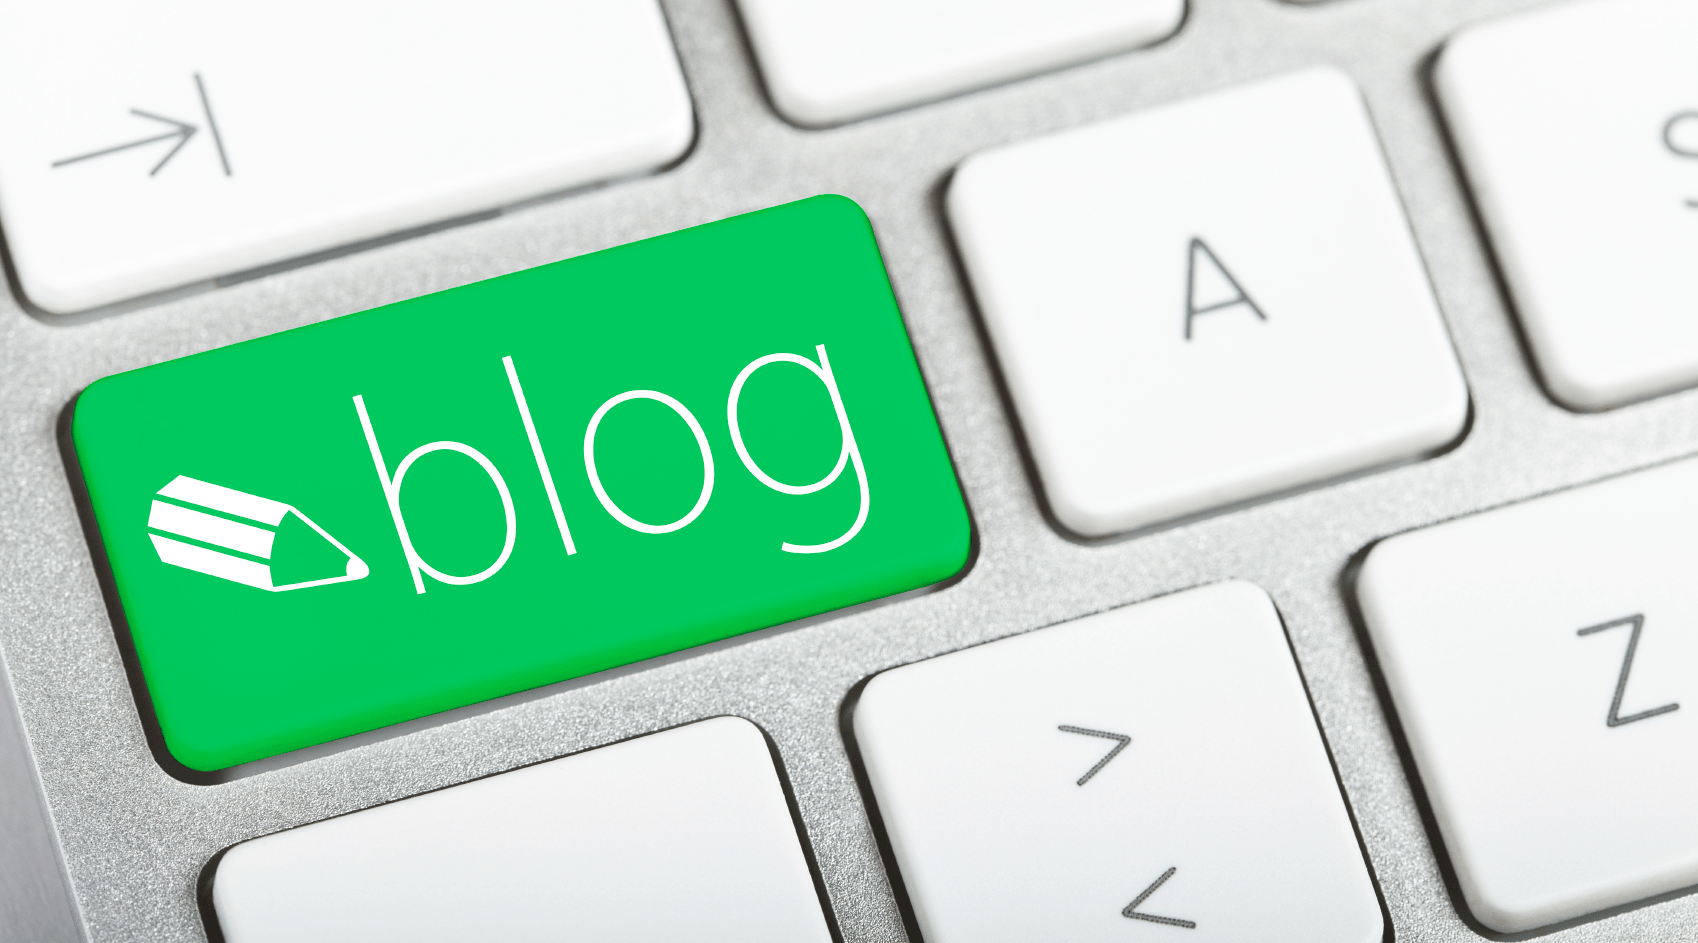 Welcome to the brand-new ReMaTec blog